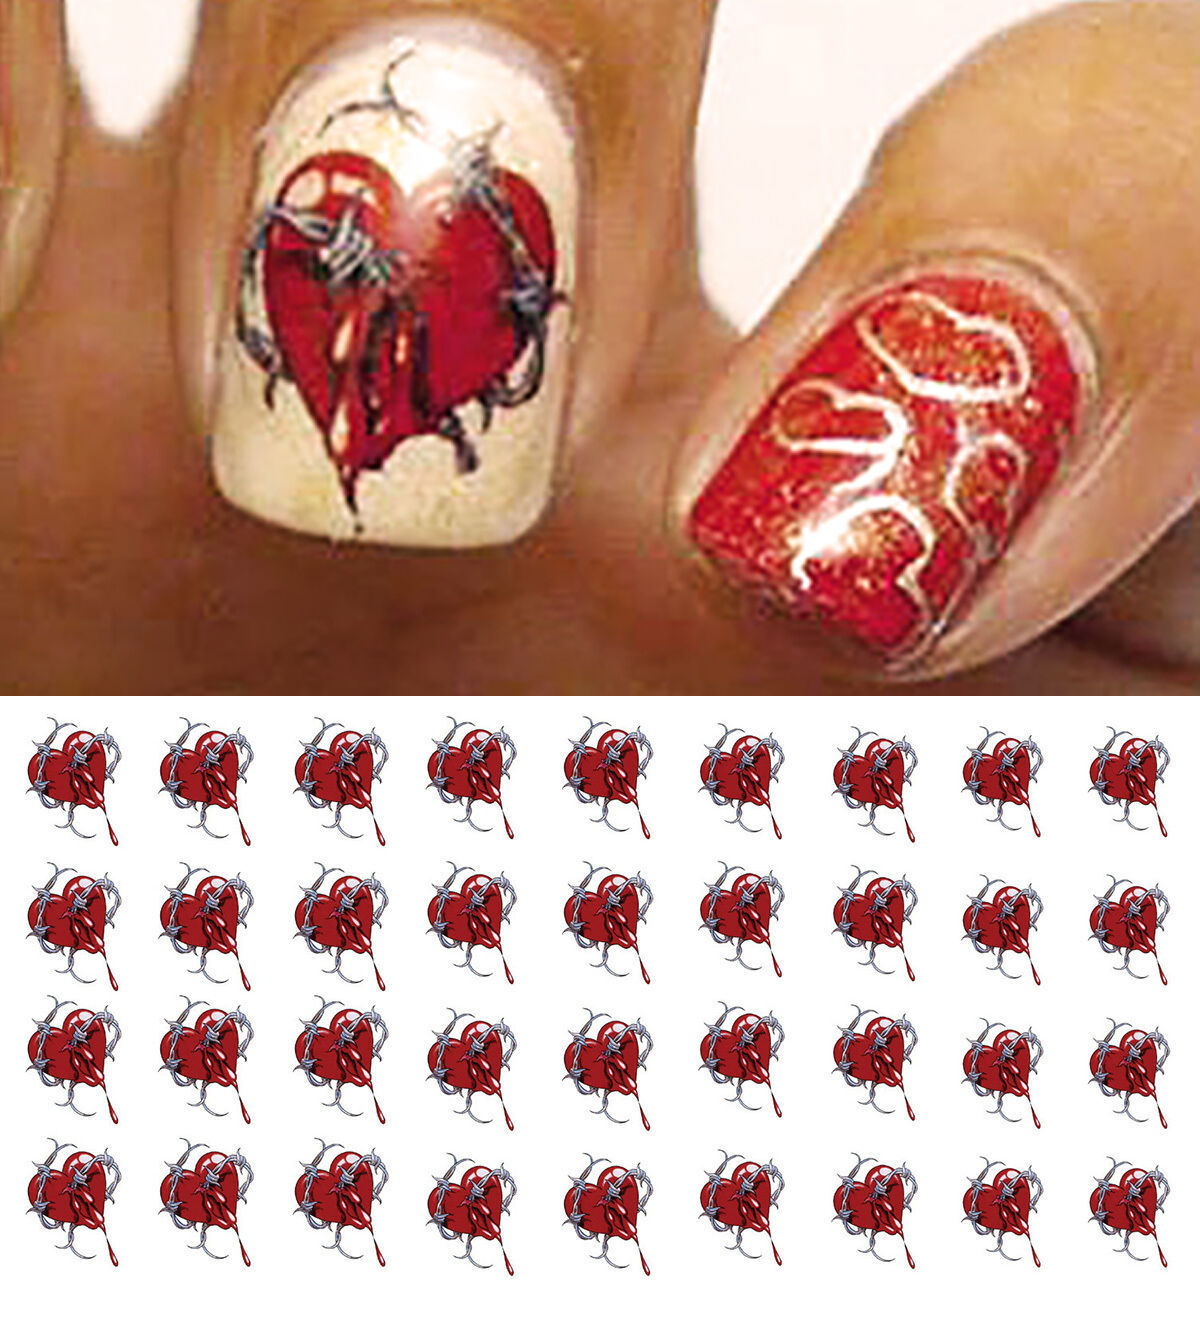 Barbed Wire Heart Nail Art Waterslide Decals Salon Quality